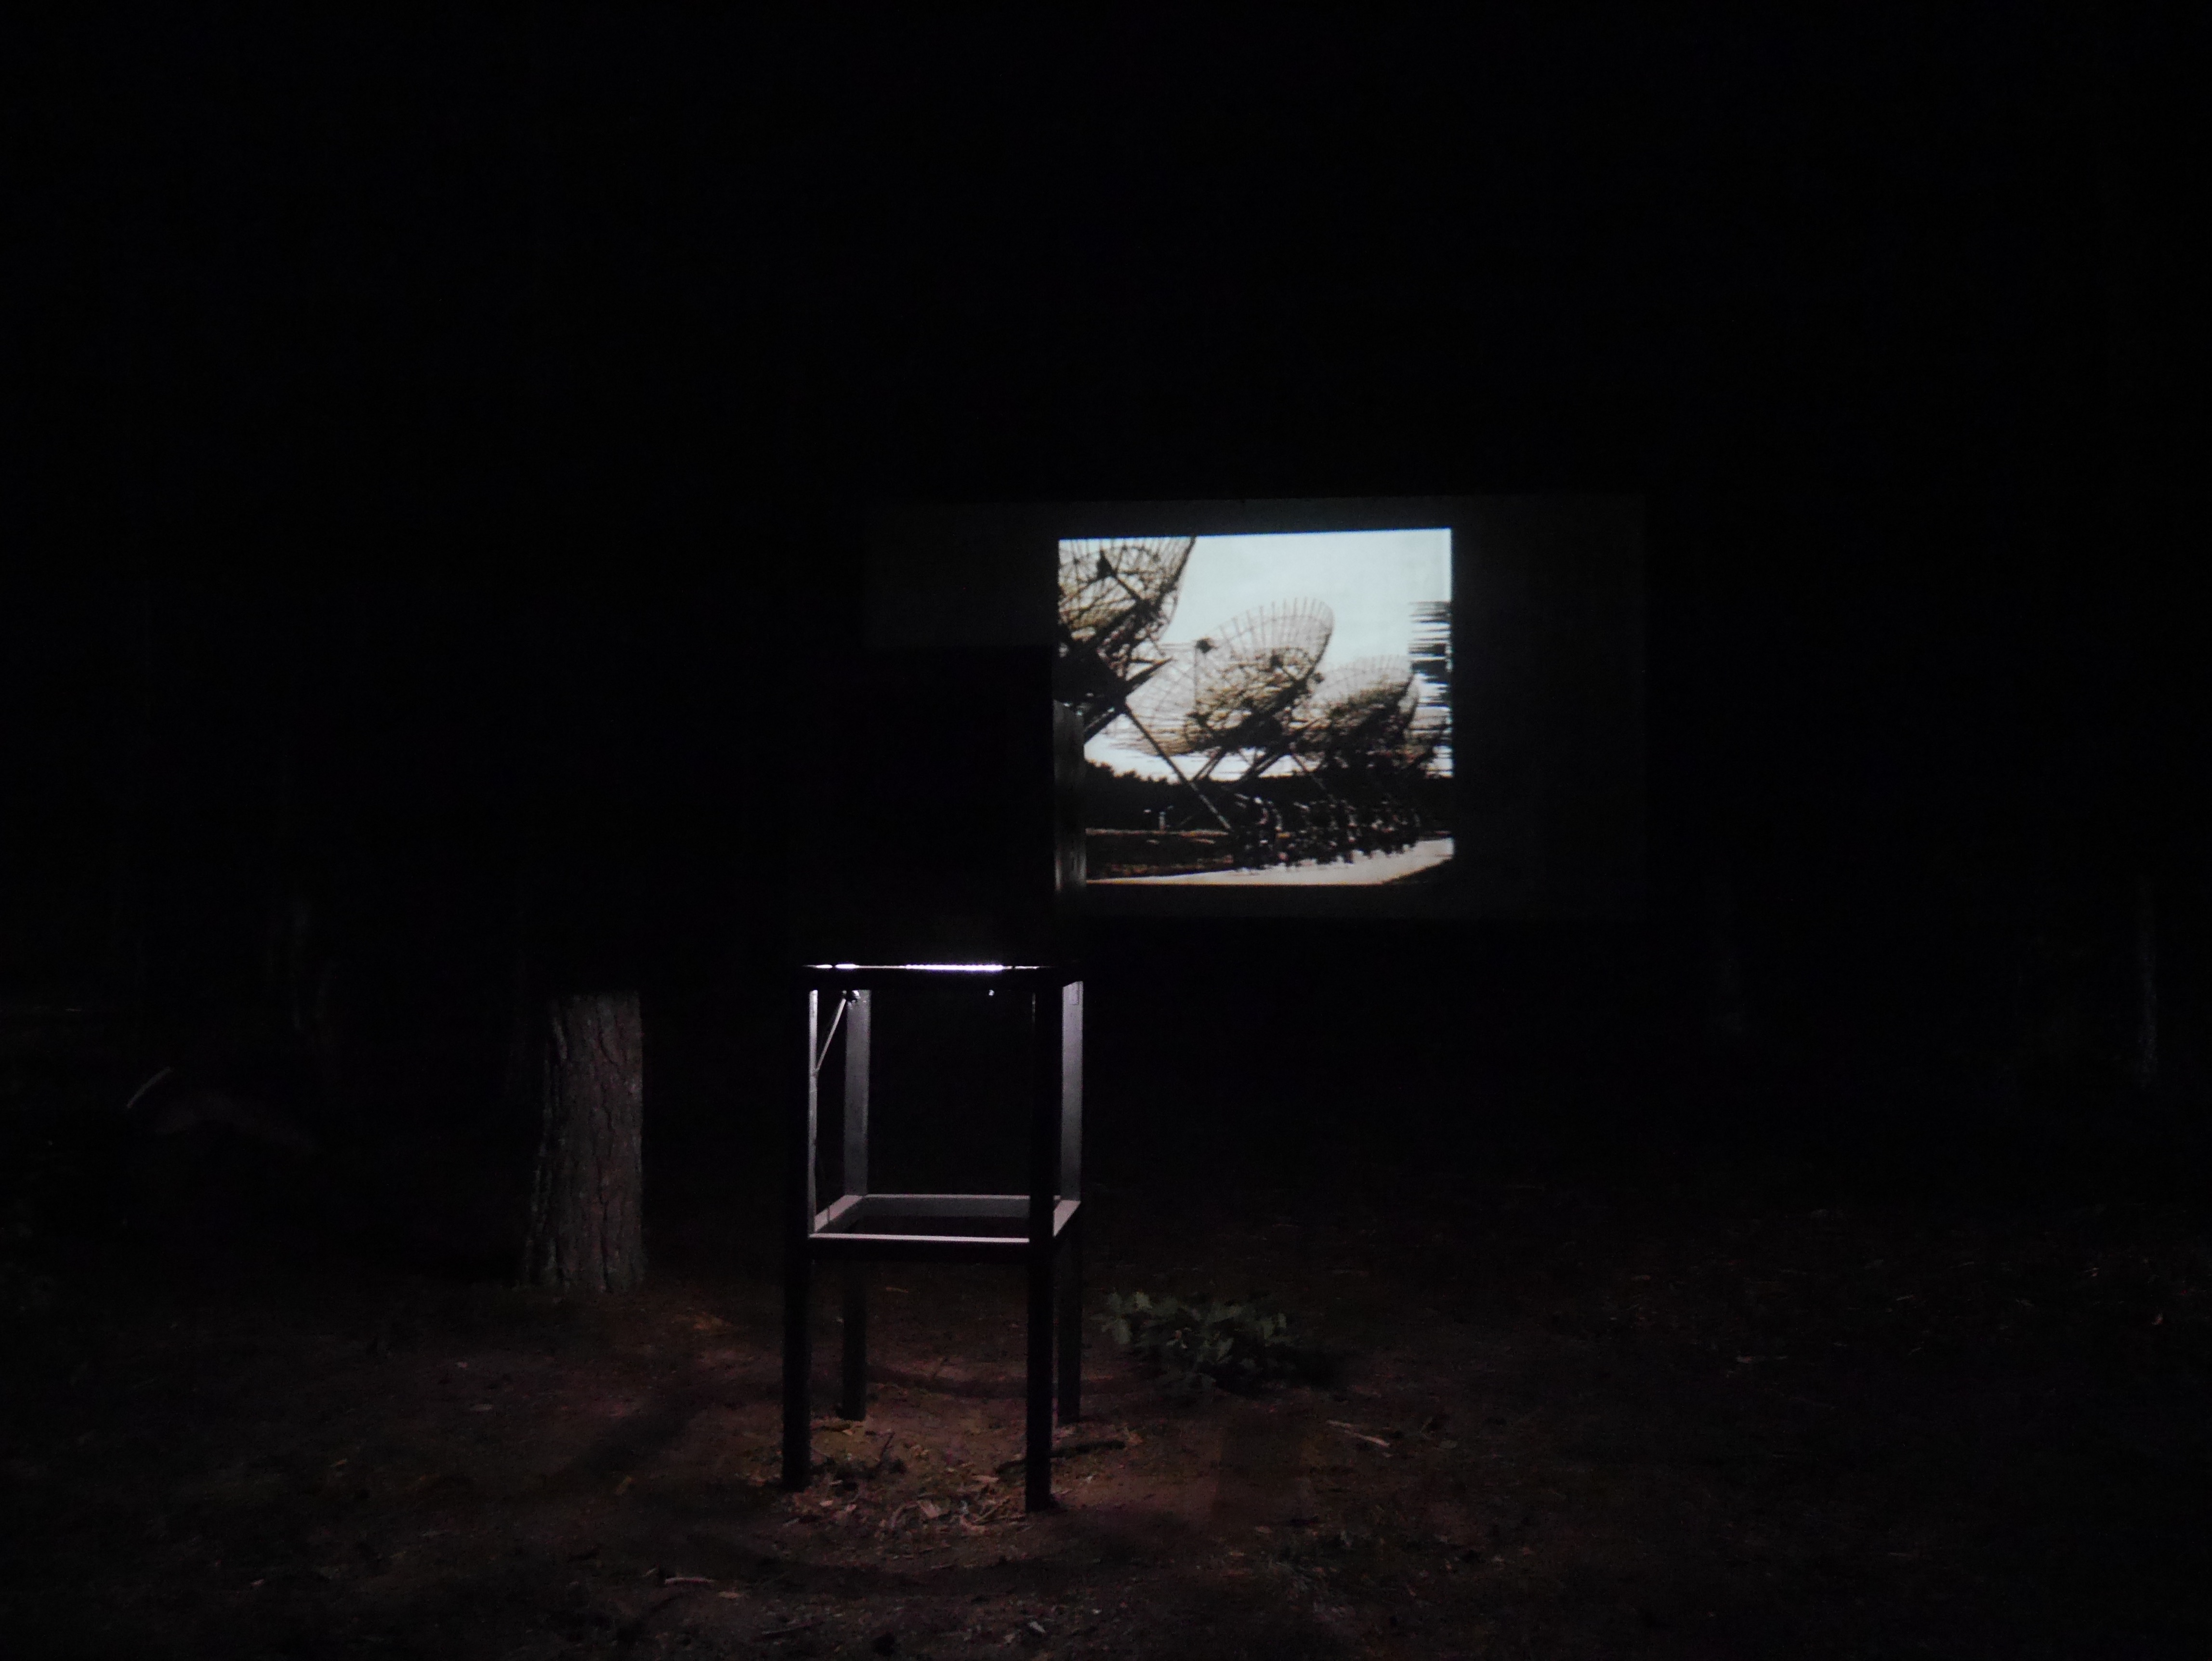 Voyages at SILENT STAGE, Lithuania, 2018, curated by Mona Casey and Tadas Stalyga